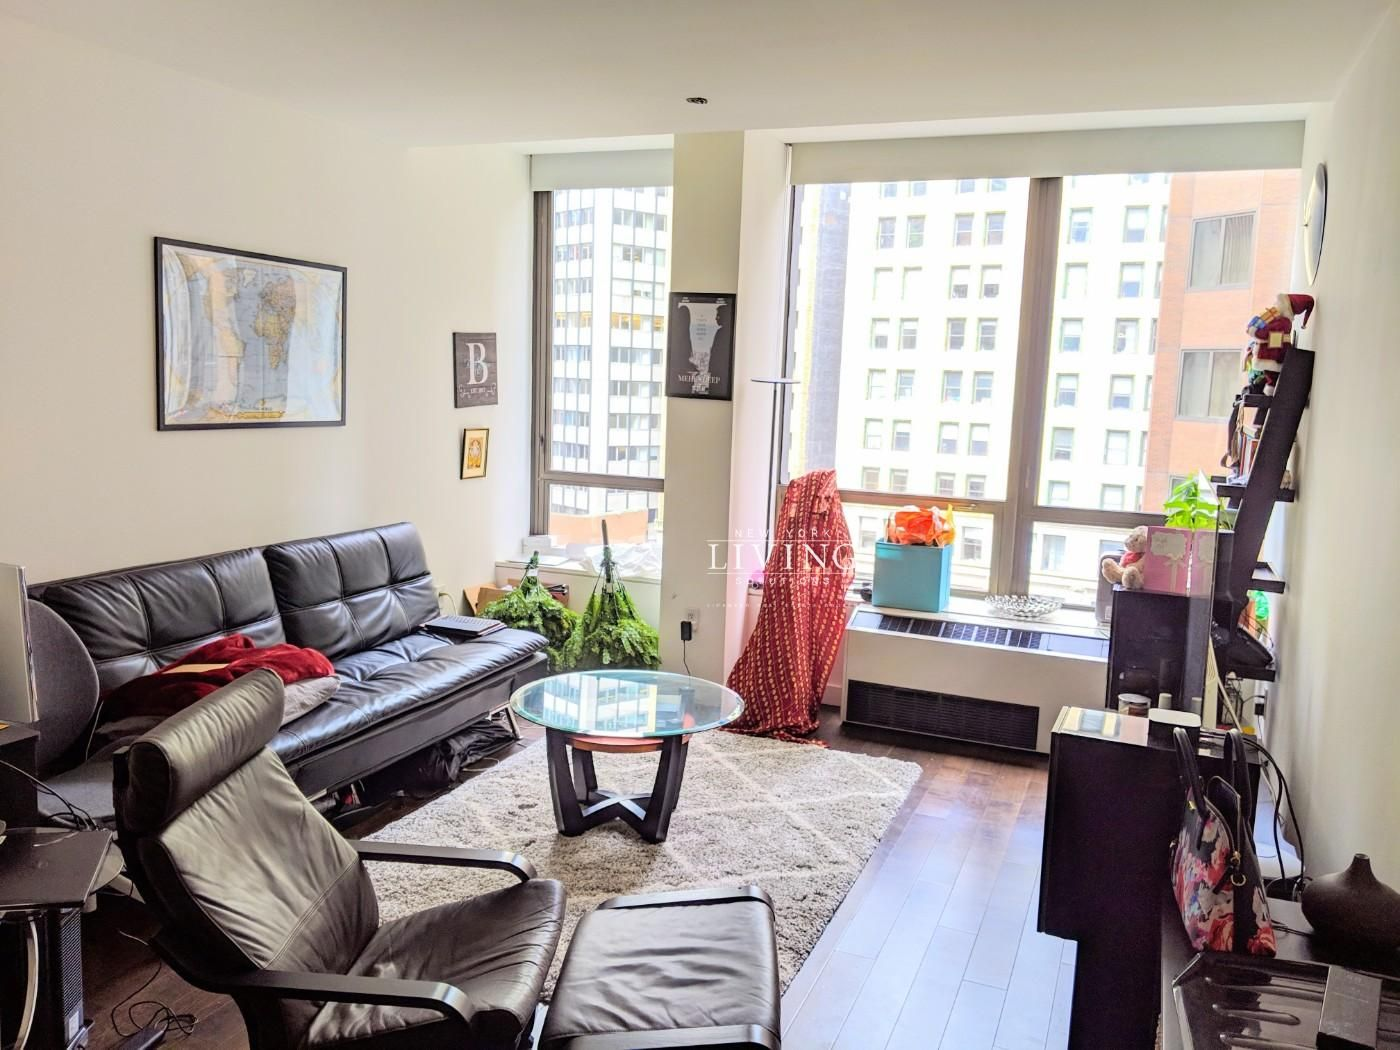 New York Apartments Financial District 1 Bedroom Apartment For Rent Apartment For Rent Nyc 1 Bedroom Apartment Apartments For Rent